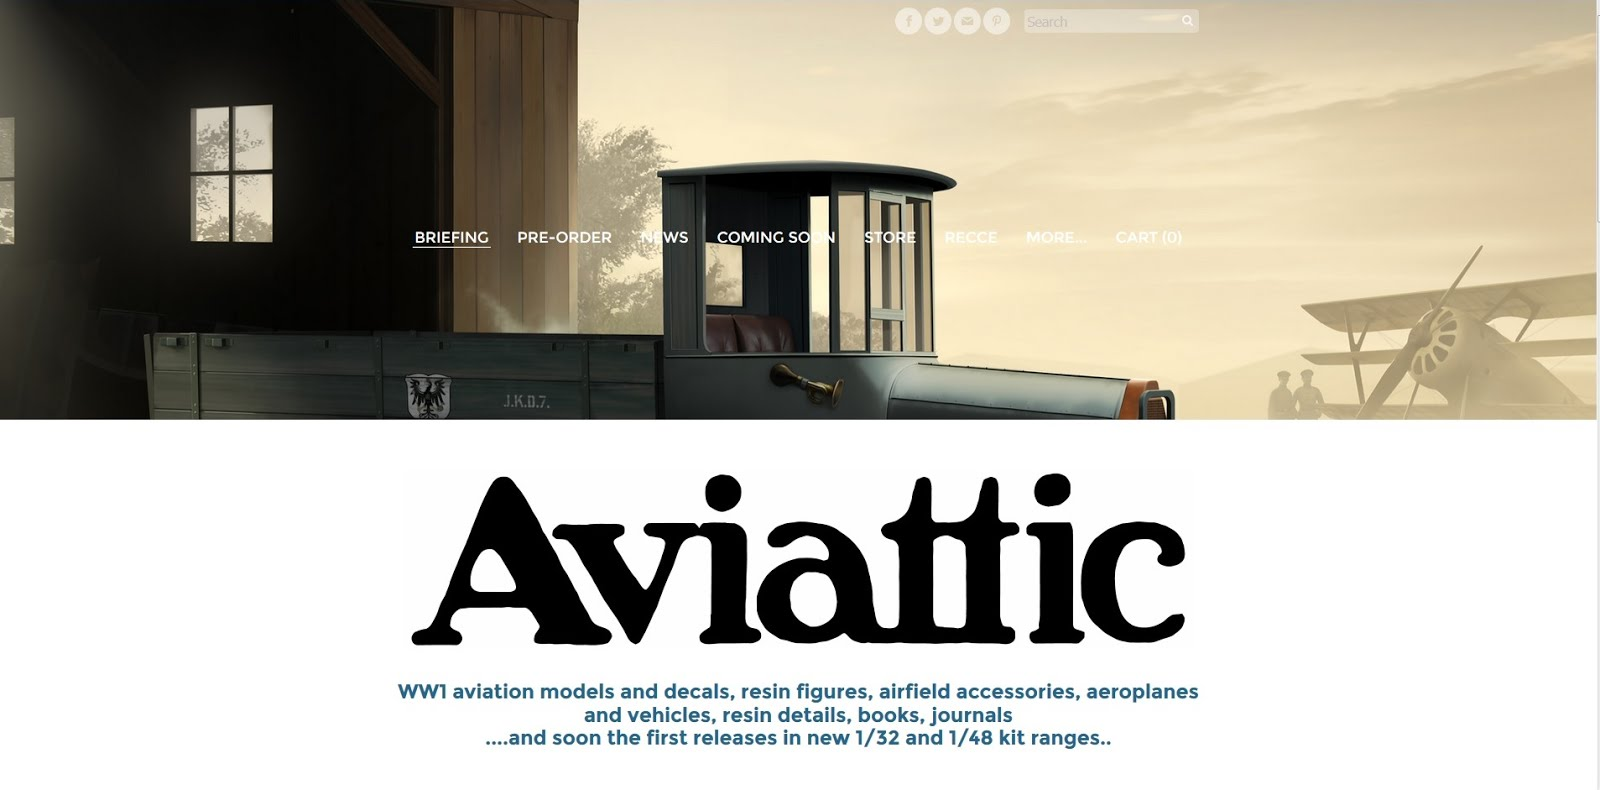 Aviattic